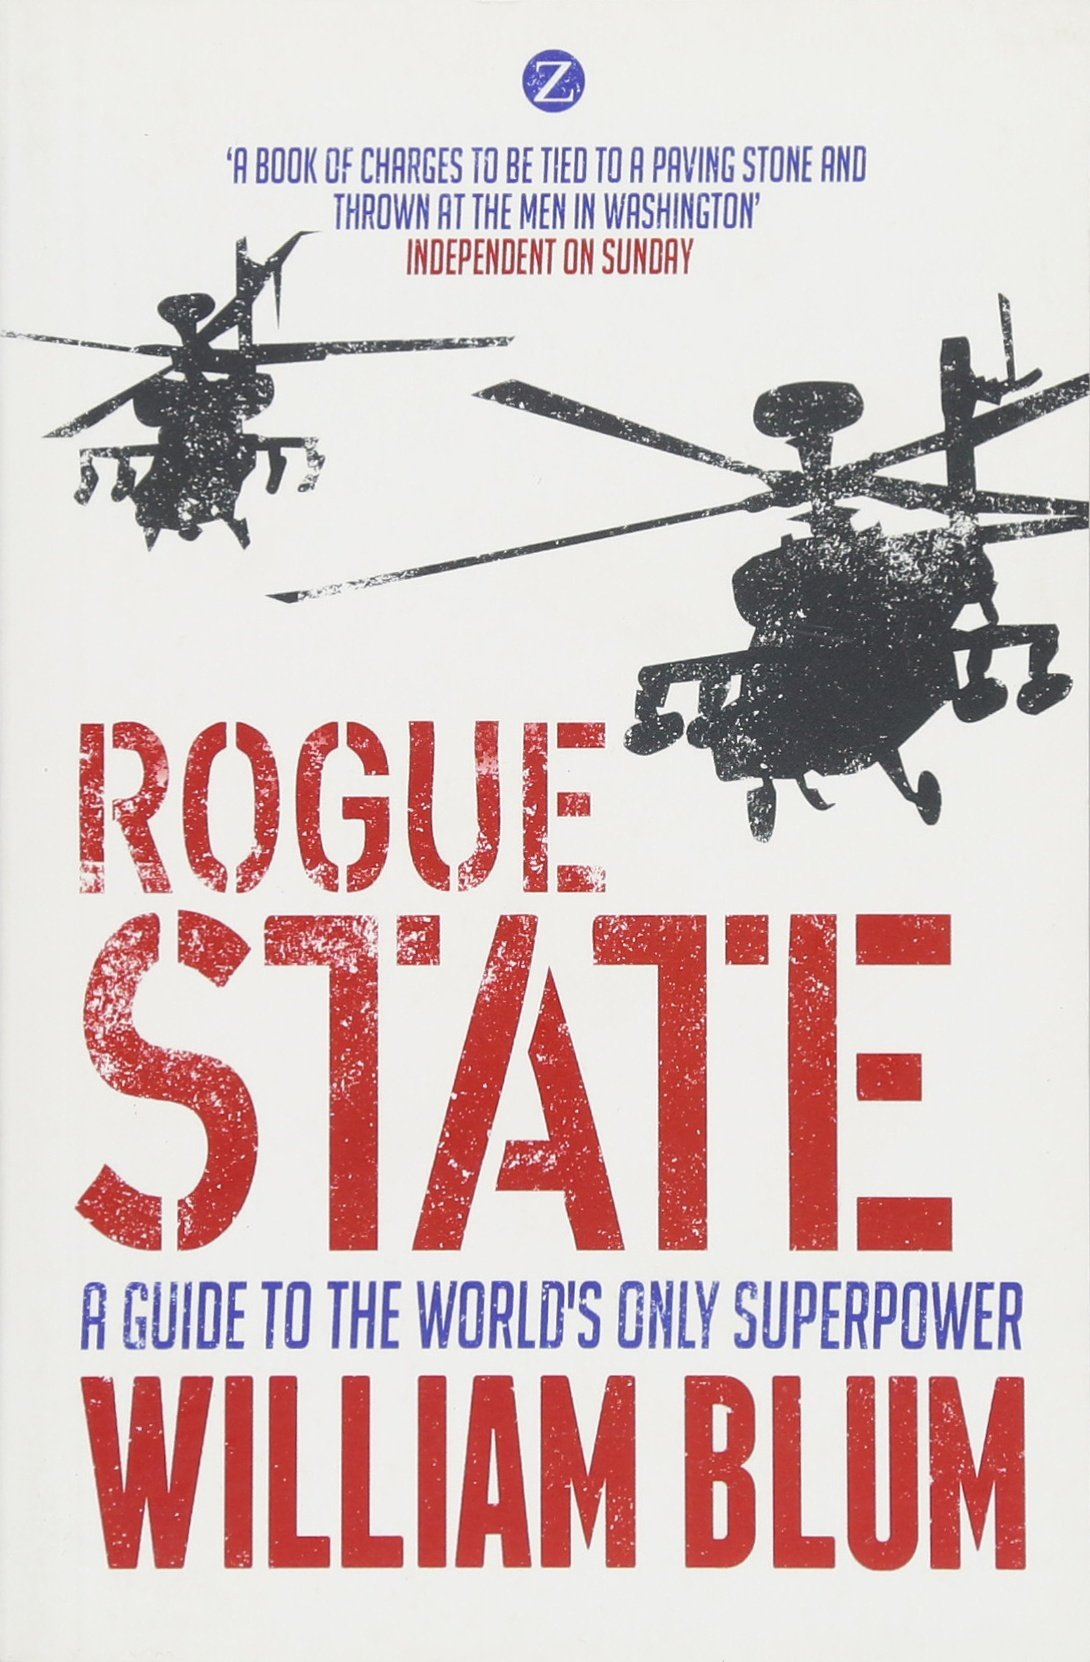 Amazon.com: Rogue State: A Guide to the Worlds Only Superpower ...